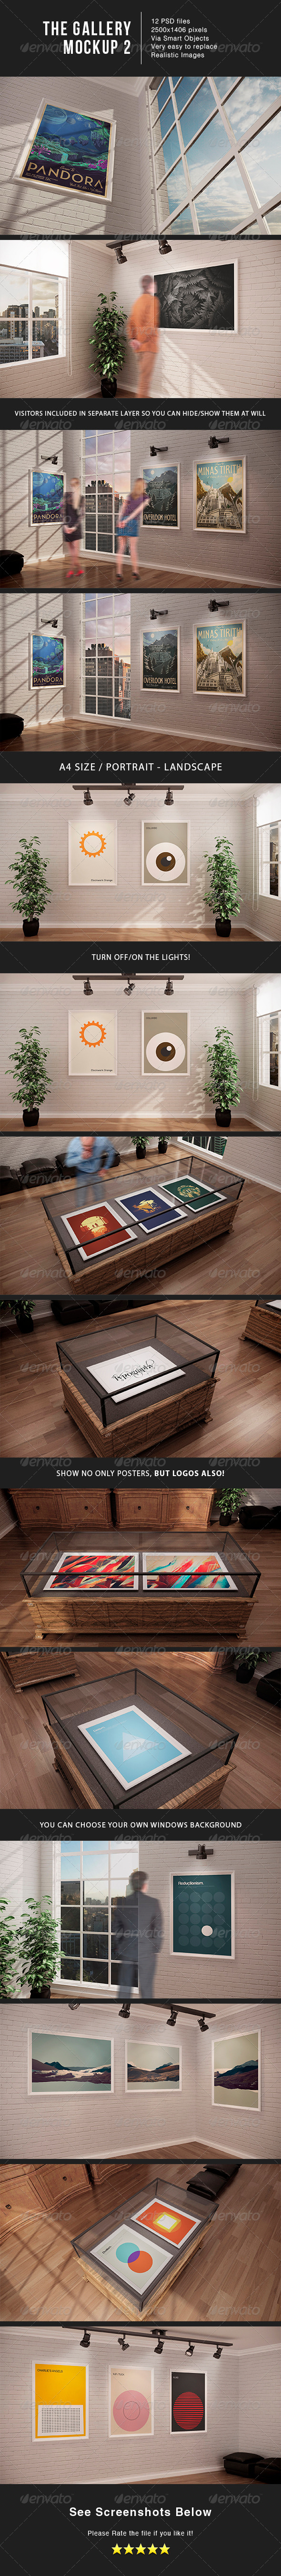 The Gallery 2 + Museum MockUp Bundle - Posters Print